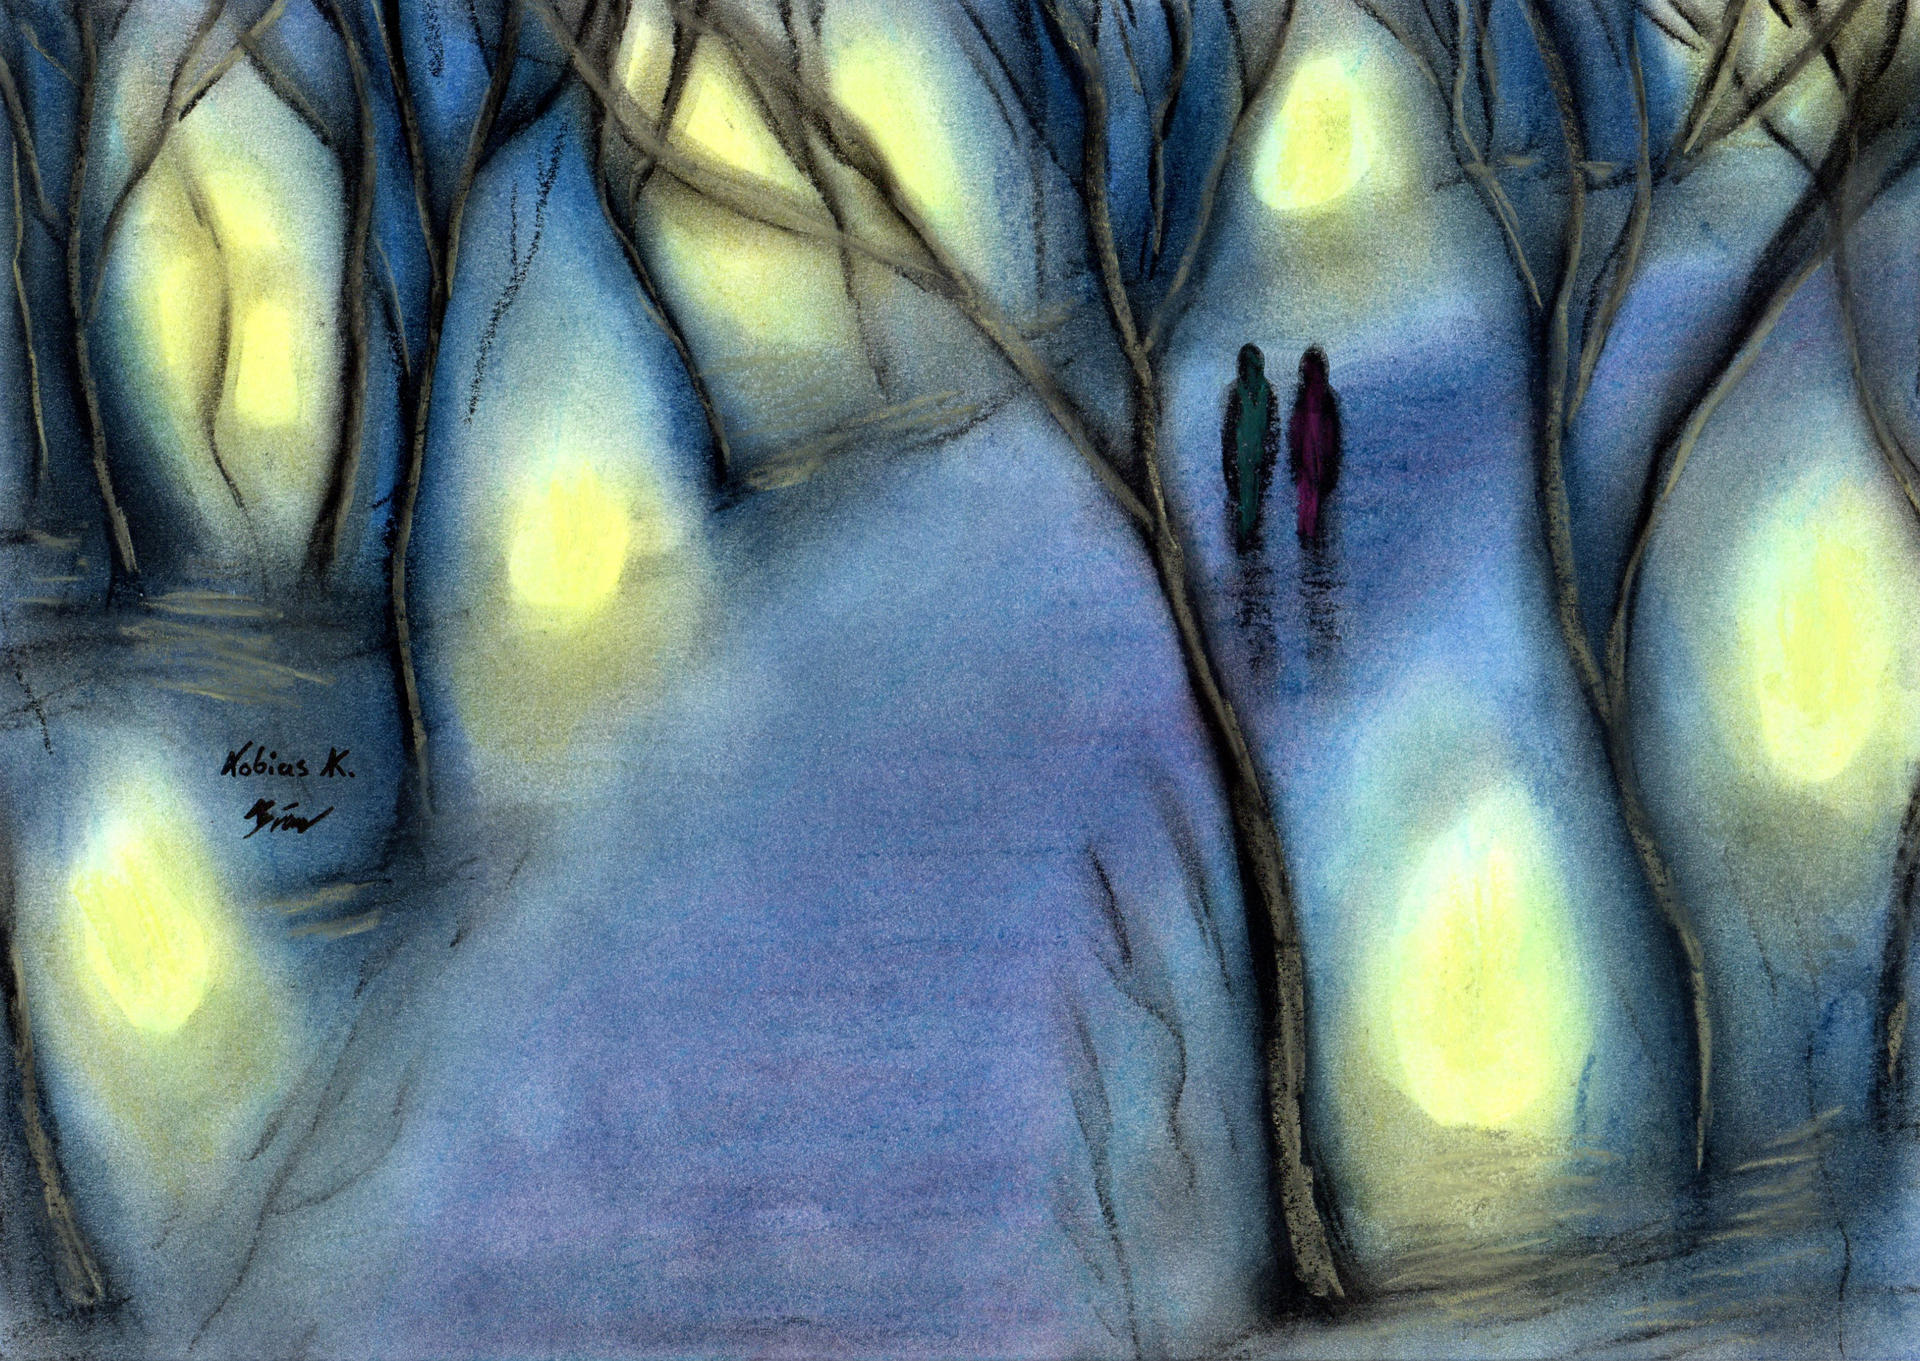 Walking together amidst the Glow of Gloom